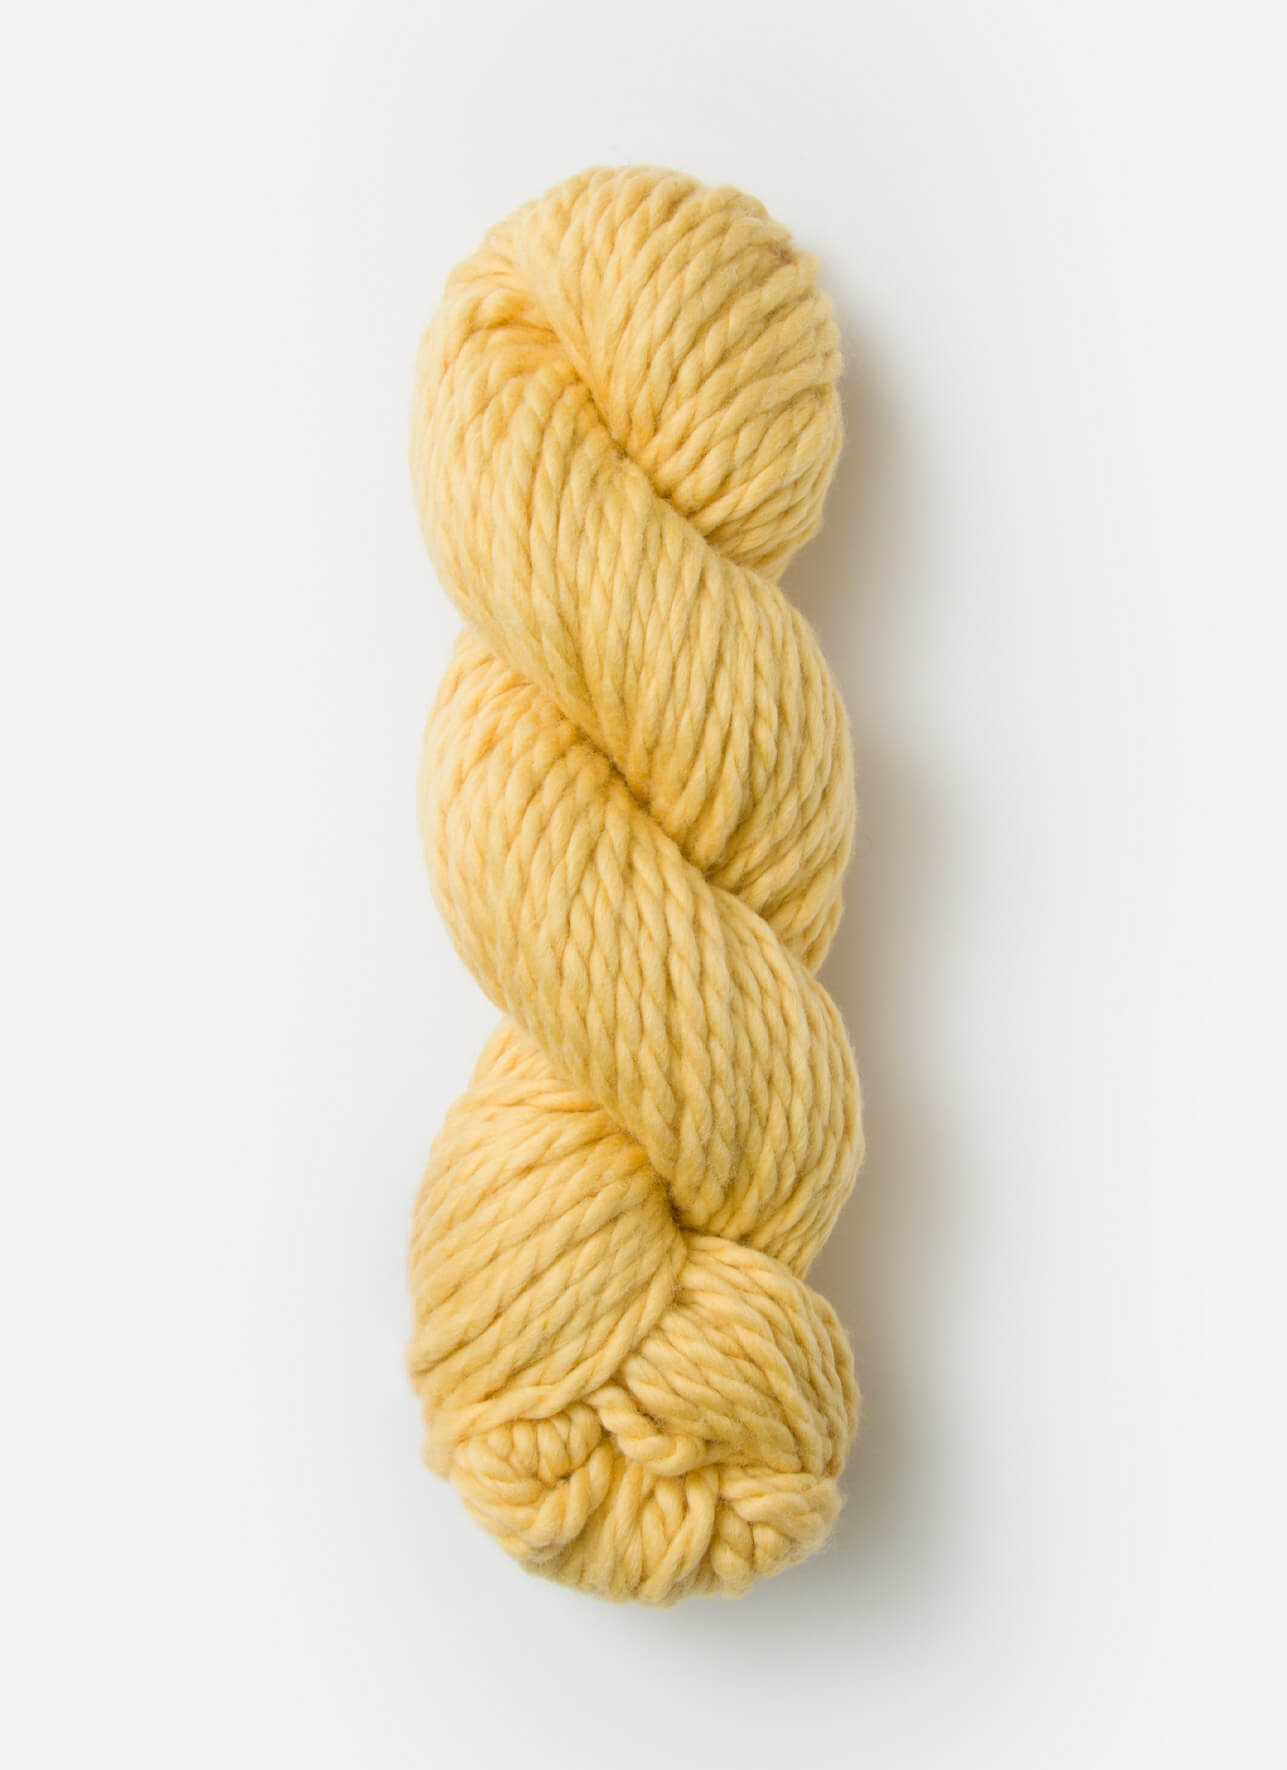 No. 7208: Corn Silk